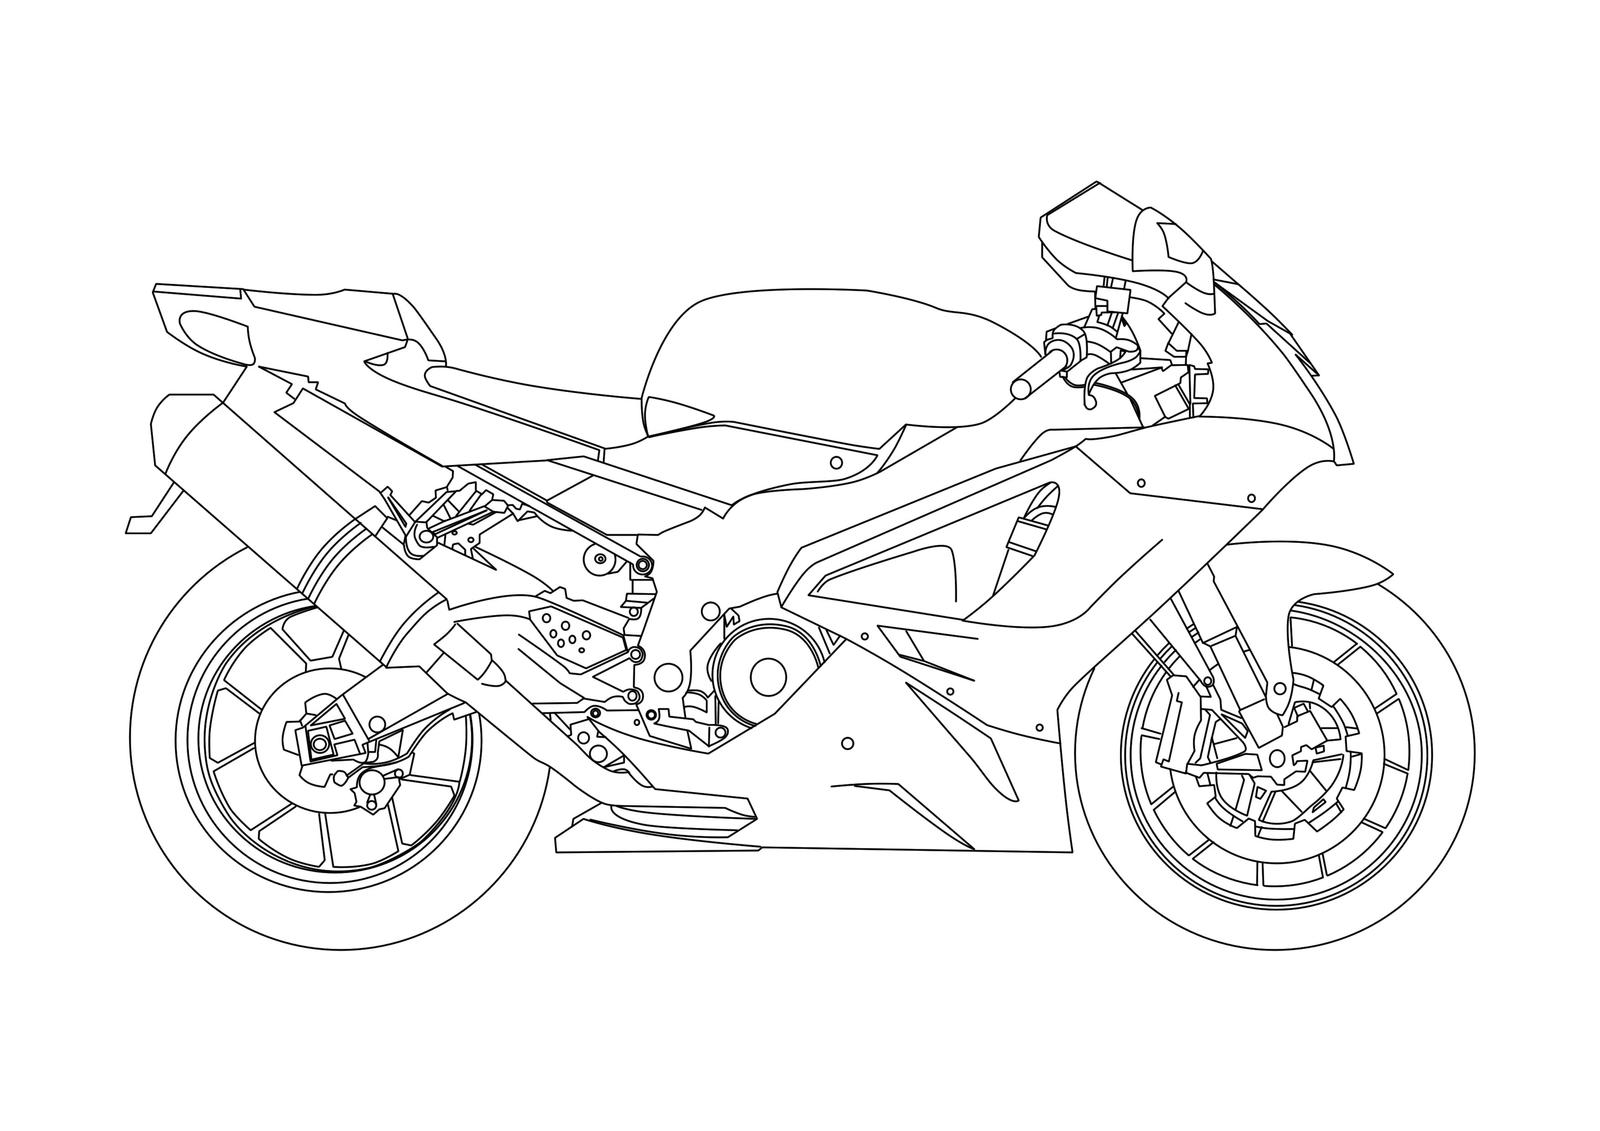 Does Anyone Have A Drawing Of An RSV1000R?